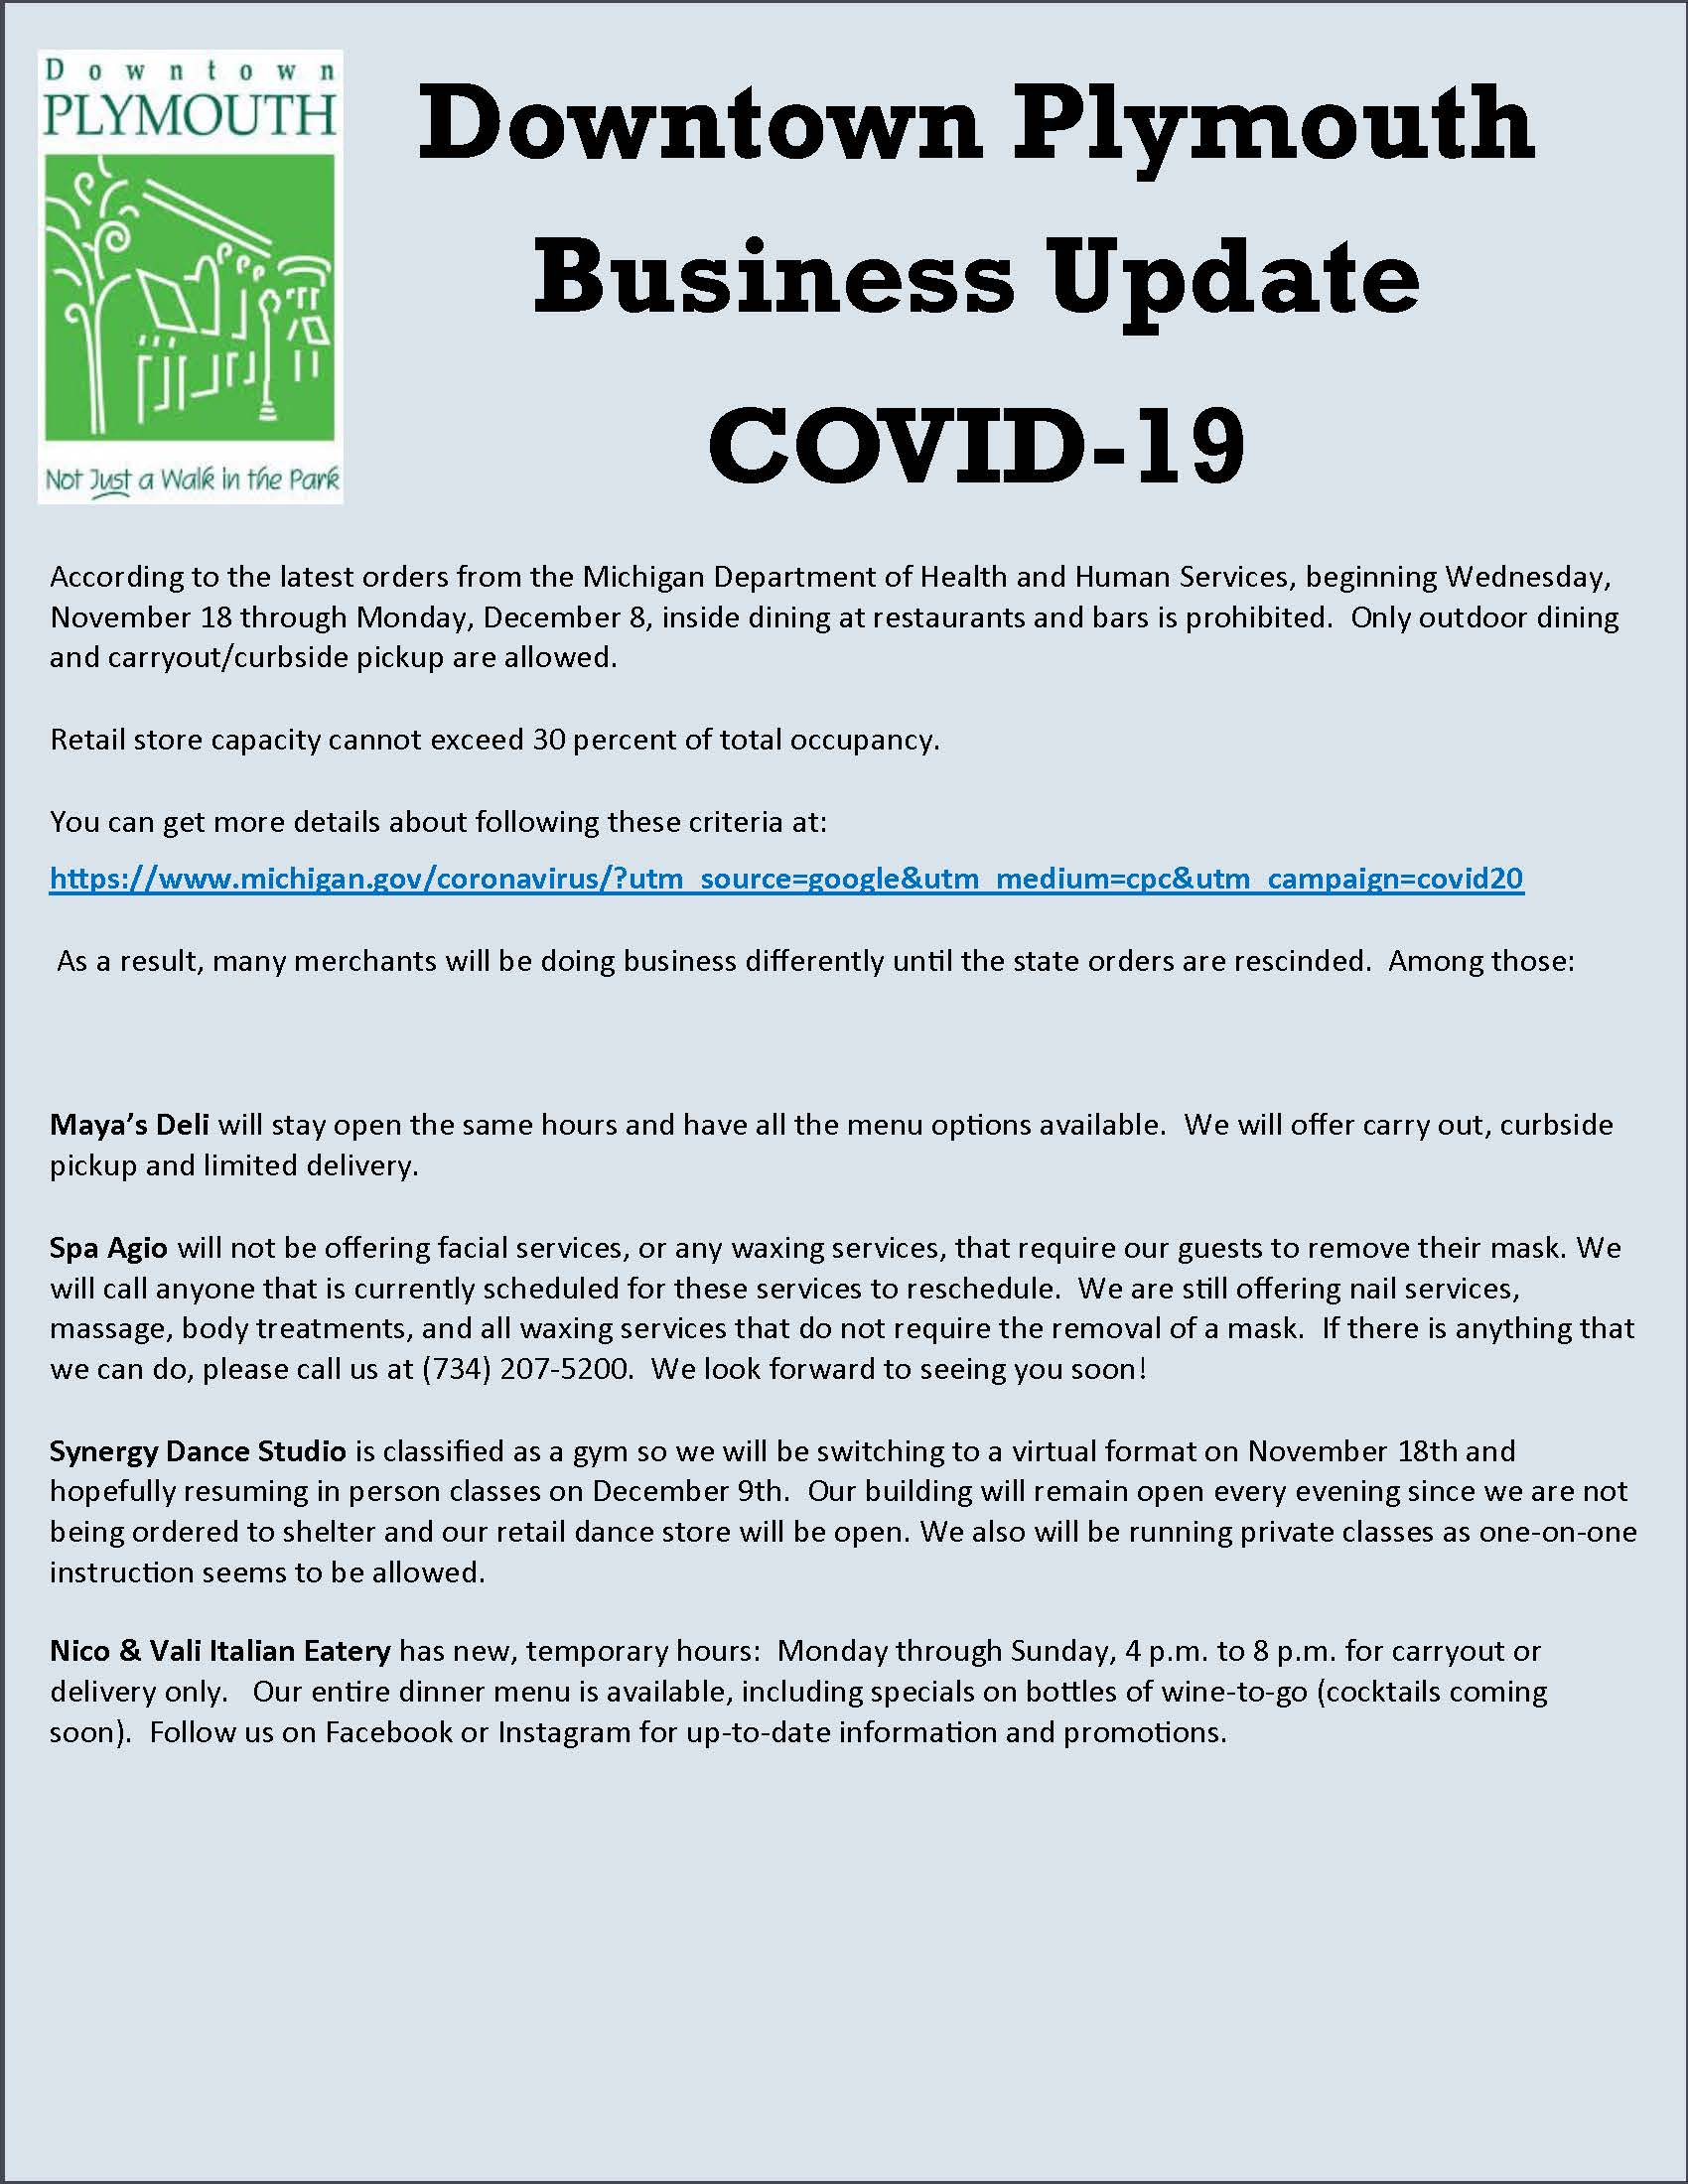 Downtown Plymouth business update 11-18-20